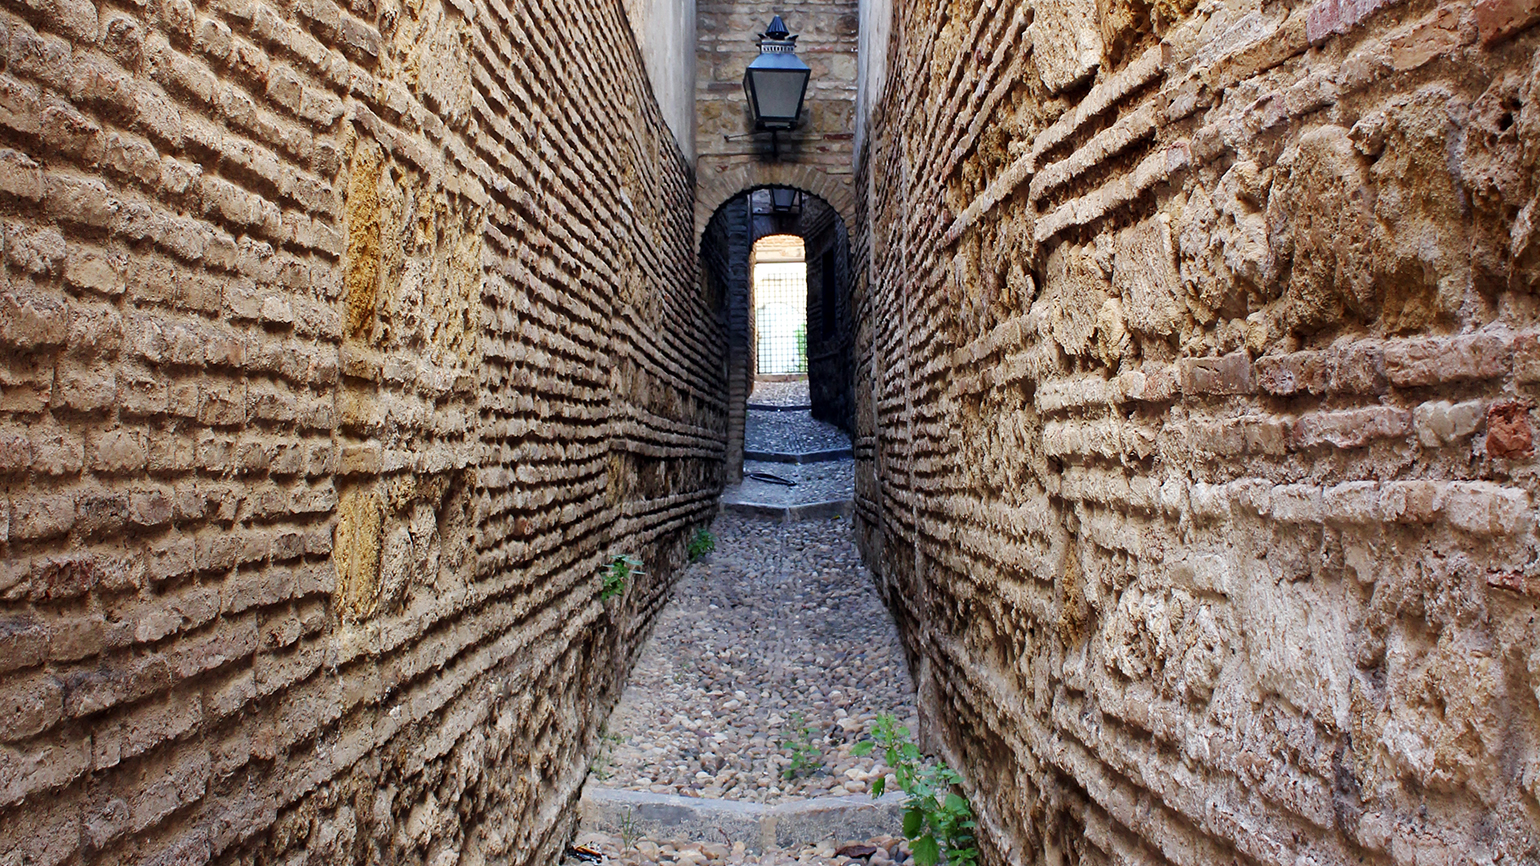 A narrow passageway leading to a gate